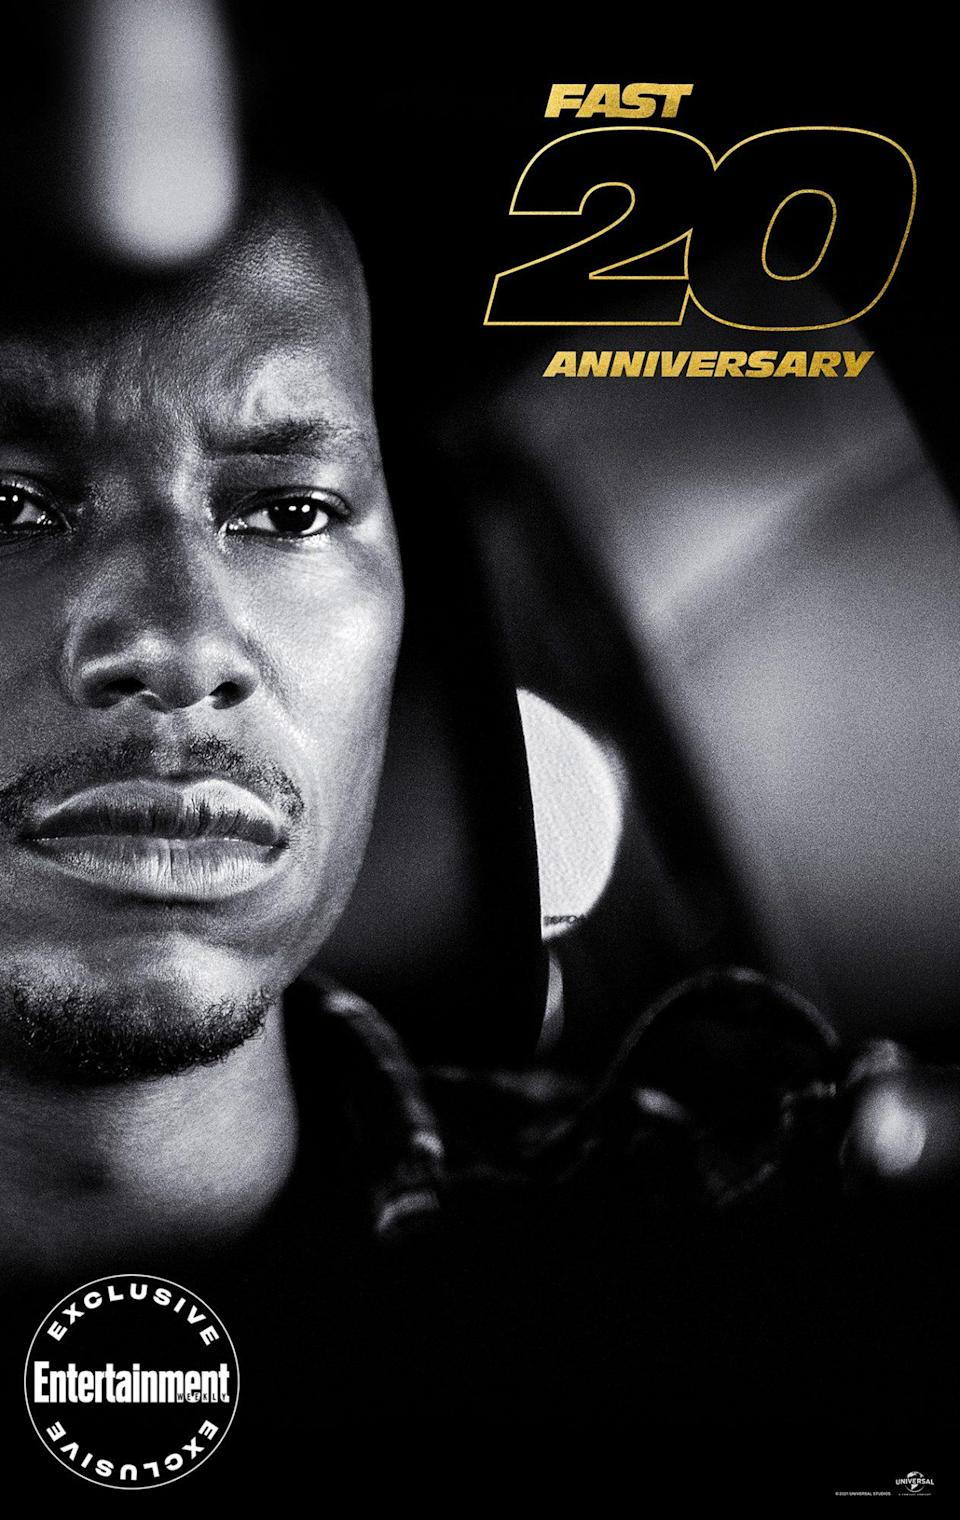 """<p>When Diesel opted not to return for 2003's <em>2 Fast 2 Furious</em>, <a href=""""https://ew.com/tag/tyrese-gibson/"""" rel=""""nofollow noopener"""" target=""""_blank"""" data-ylk=""""slk:Tyrese Gibson,"""" class=""""link rapid-noclick-resp"""">Tyrese Gibson,</a> a singer-turned-actor just coming off his film debut, joined Walker. """"I got blessed by default,"""" <a href=""""https://ew.com/ew-binge-podcast/fast-saga-tyrese-gibson-furious-7/"""" rel=""""nofollow noopener"""" target=""""_blank"""" data-ylk=""""slk:admitted Gibson on EW's BINGE: The Fast Saga"""" class=""""link rapid-noclick-resp"""">admitted Gibson on <em>EW's BINGE: The Fast Saga</em></a>. """"I said, 'Man, I'll do this s--- for per diem!'"""" He's since established himself as the franchise's comedic relief, having starred in six <em>Fast</em> films.</p>"""